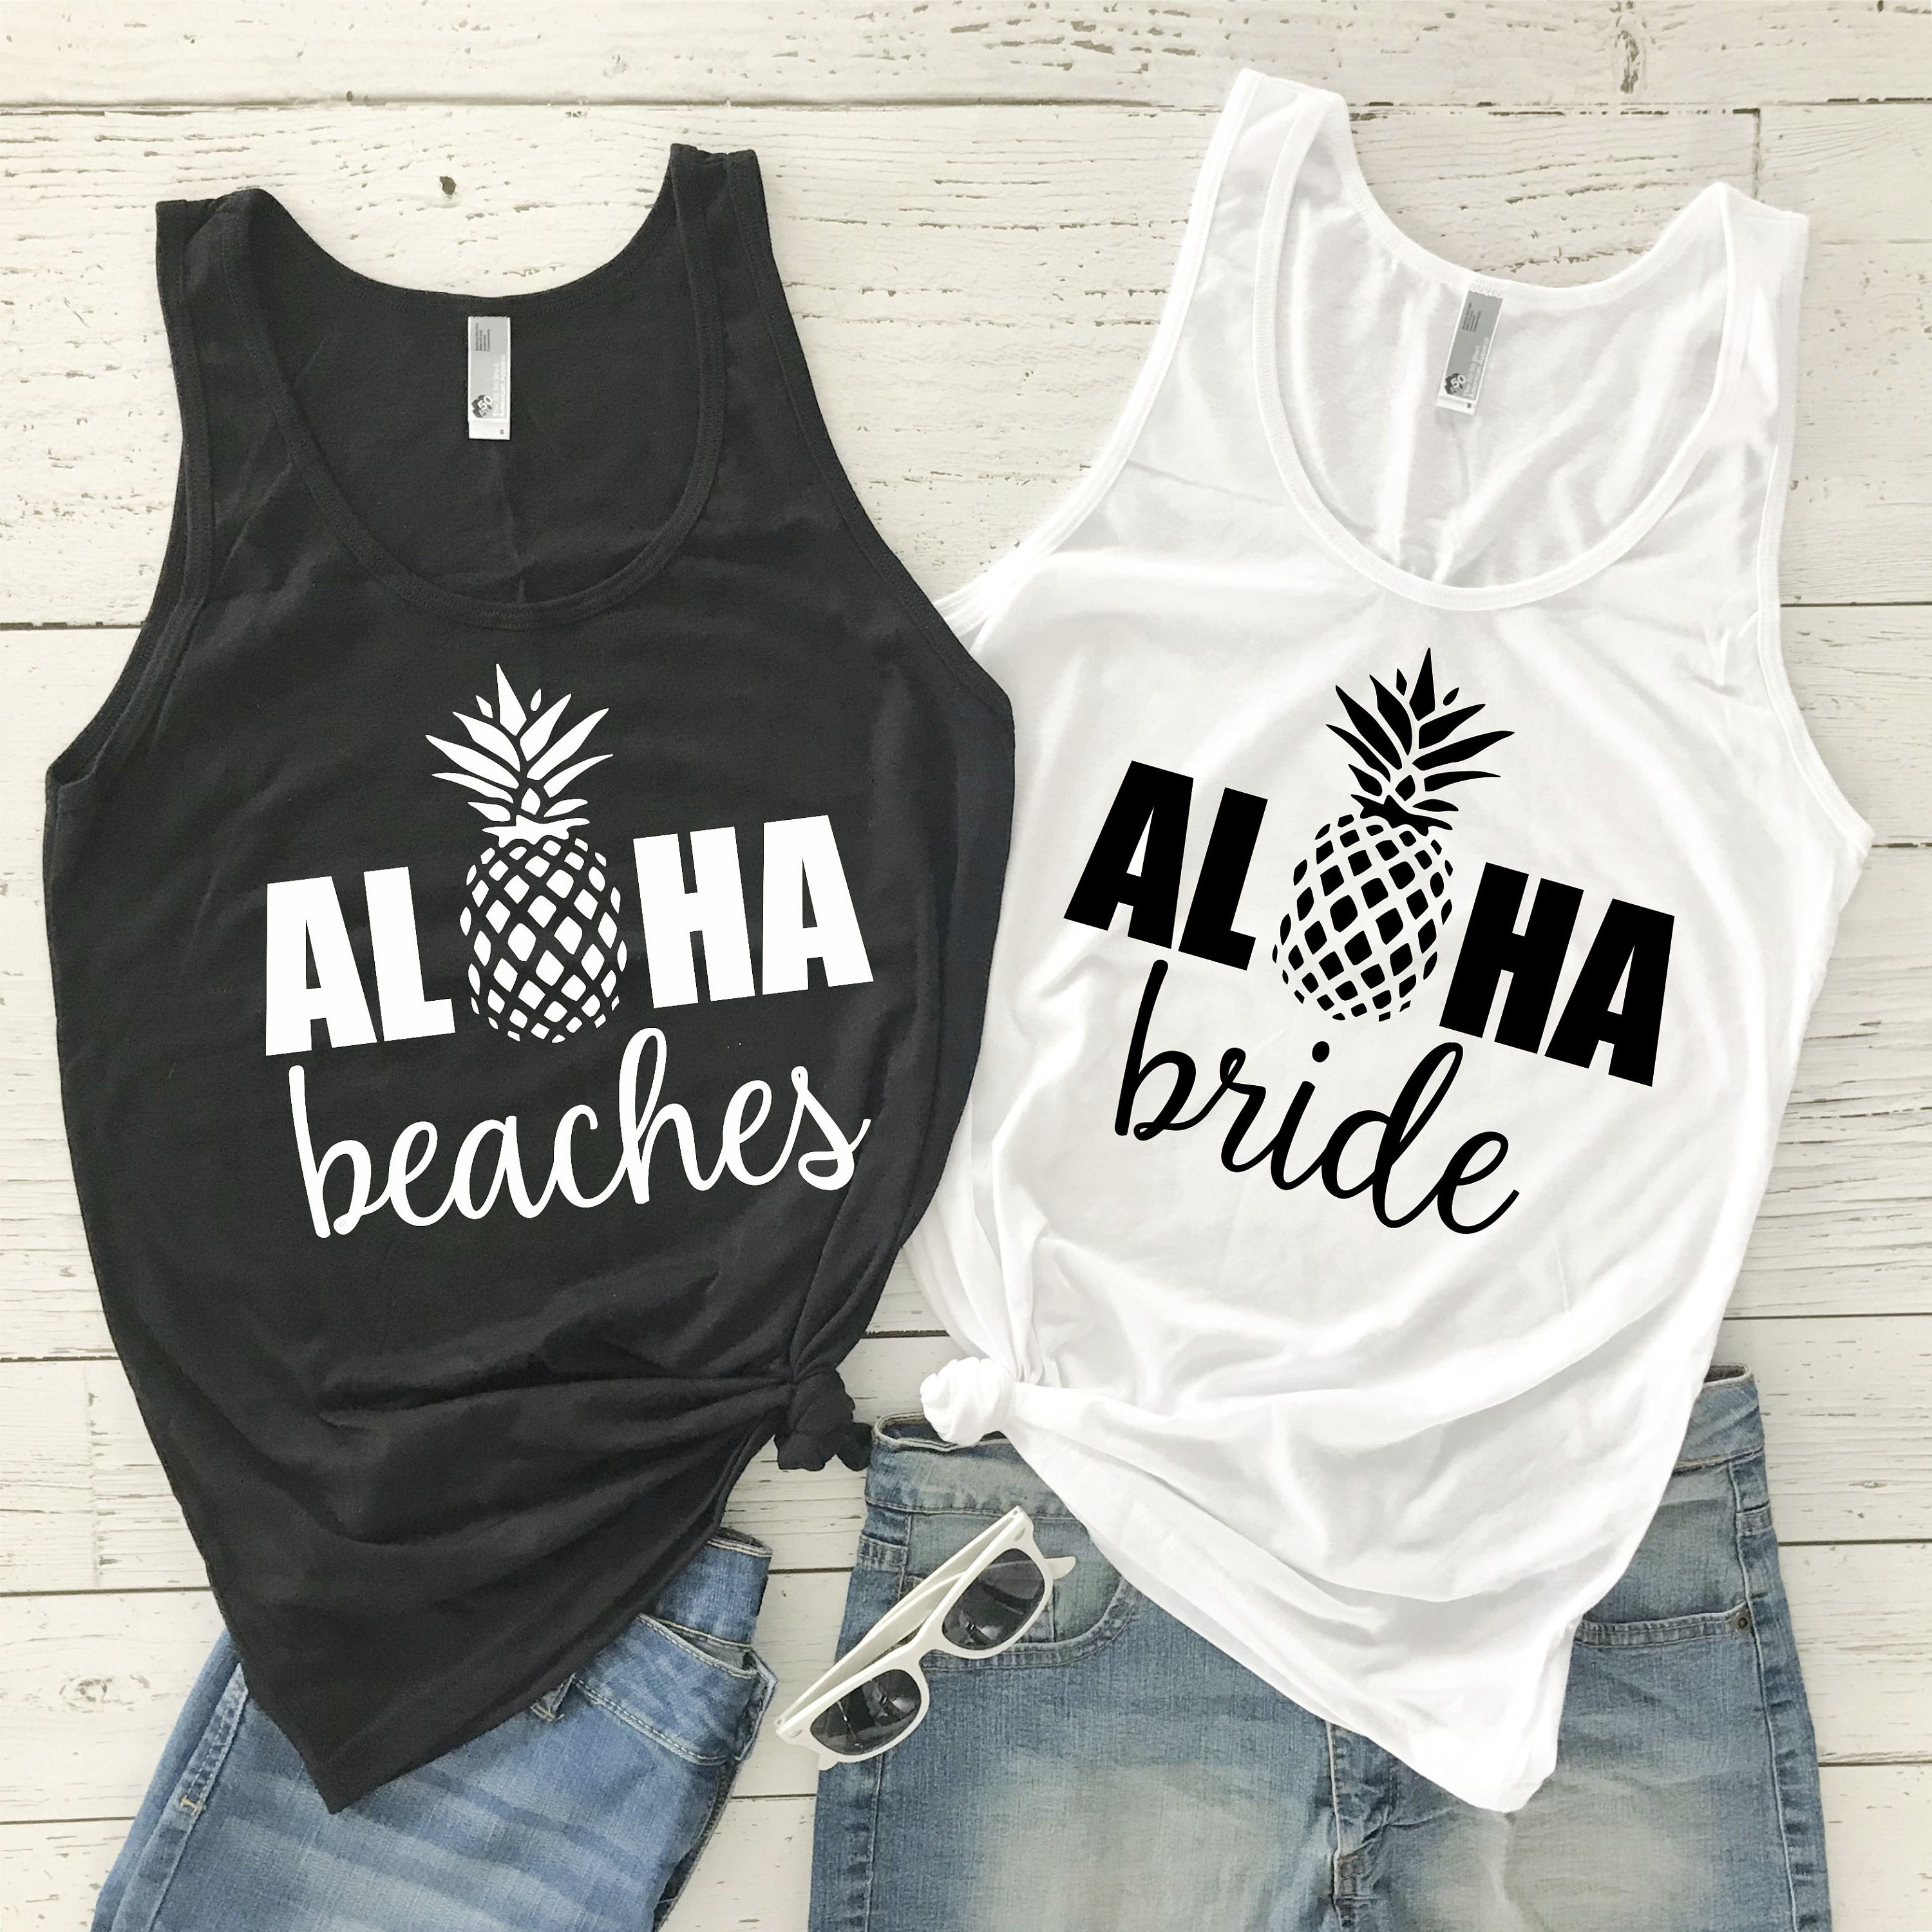 Loha Beaches Women Sleeveless Tank Top  Aloha Bride Shirt Causal Bachelorette Tank Pineapple Print Off Shoulder Vest Graphic Tee